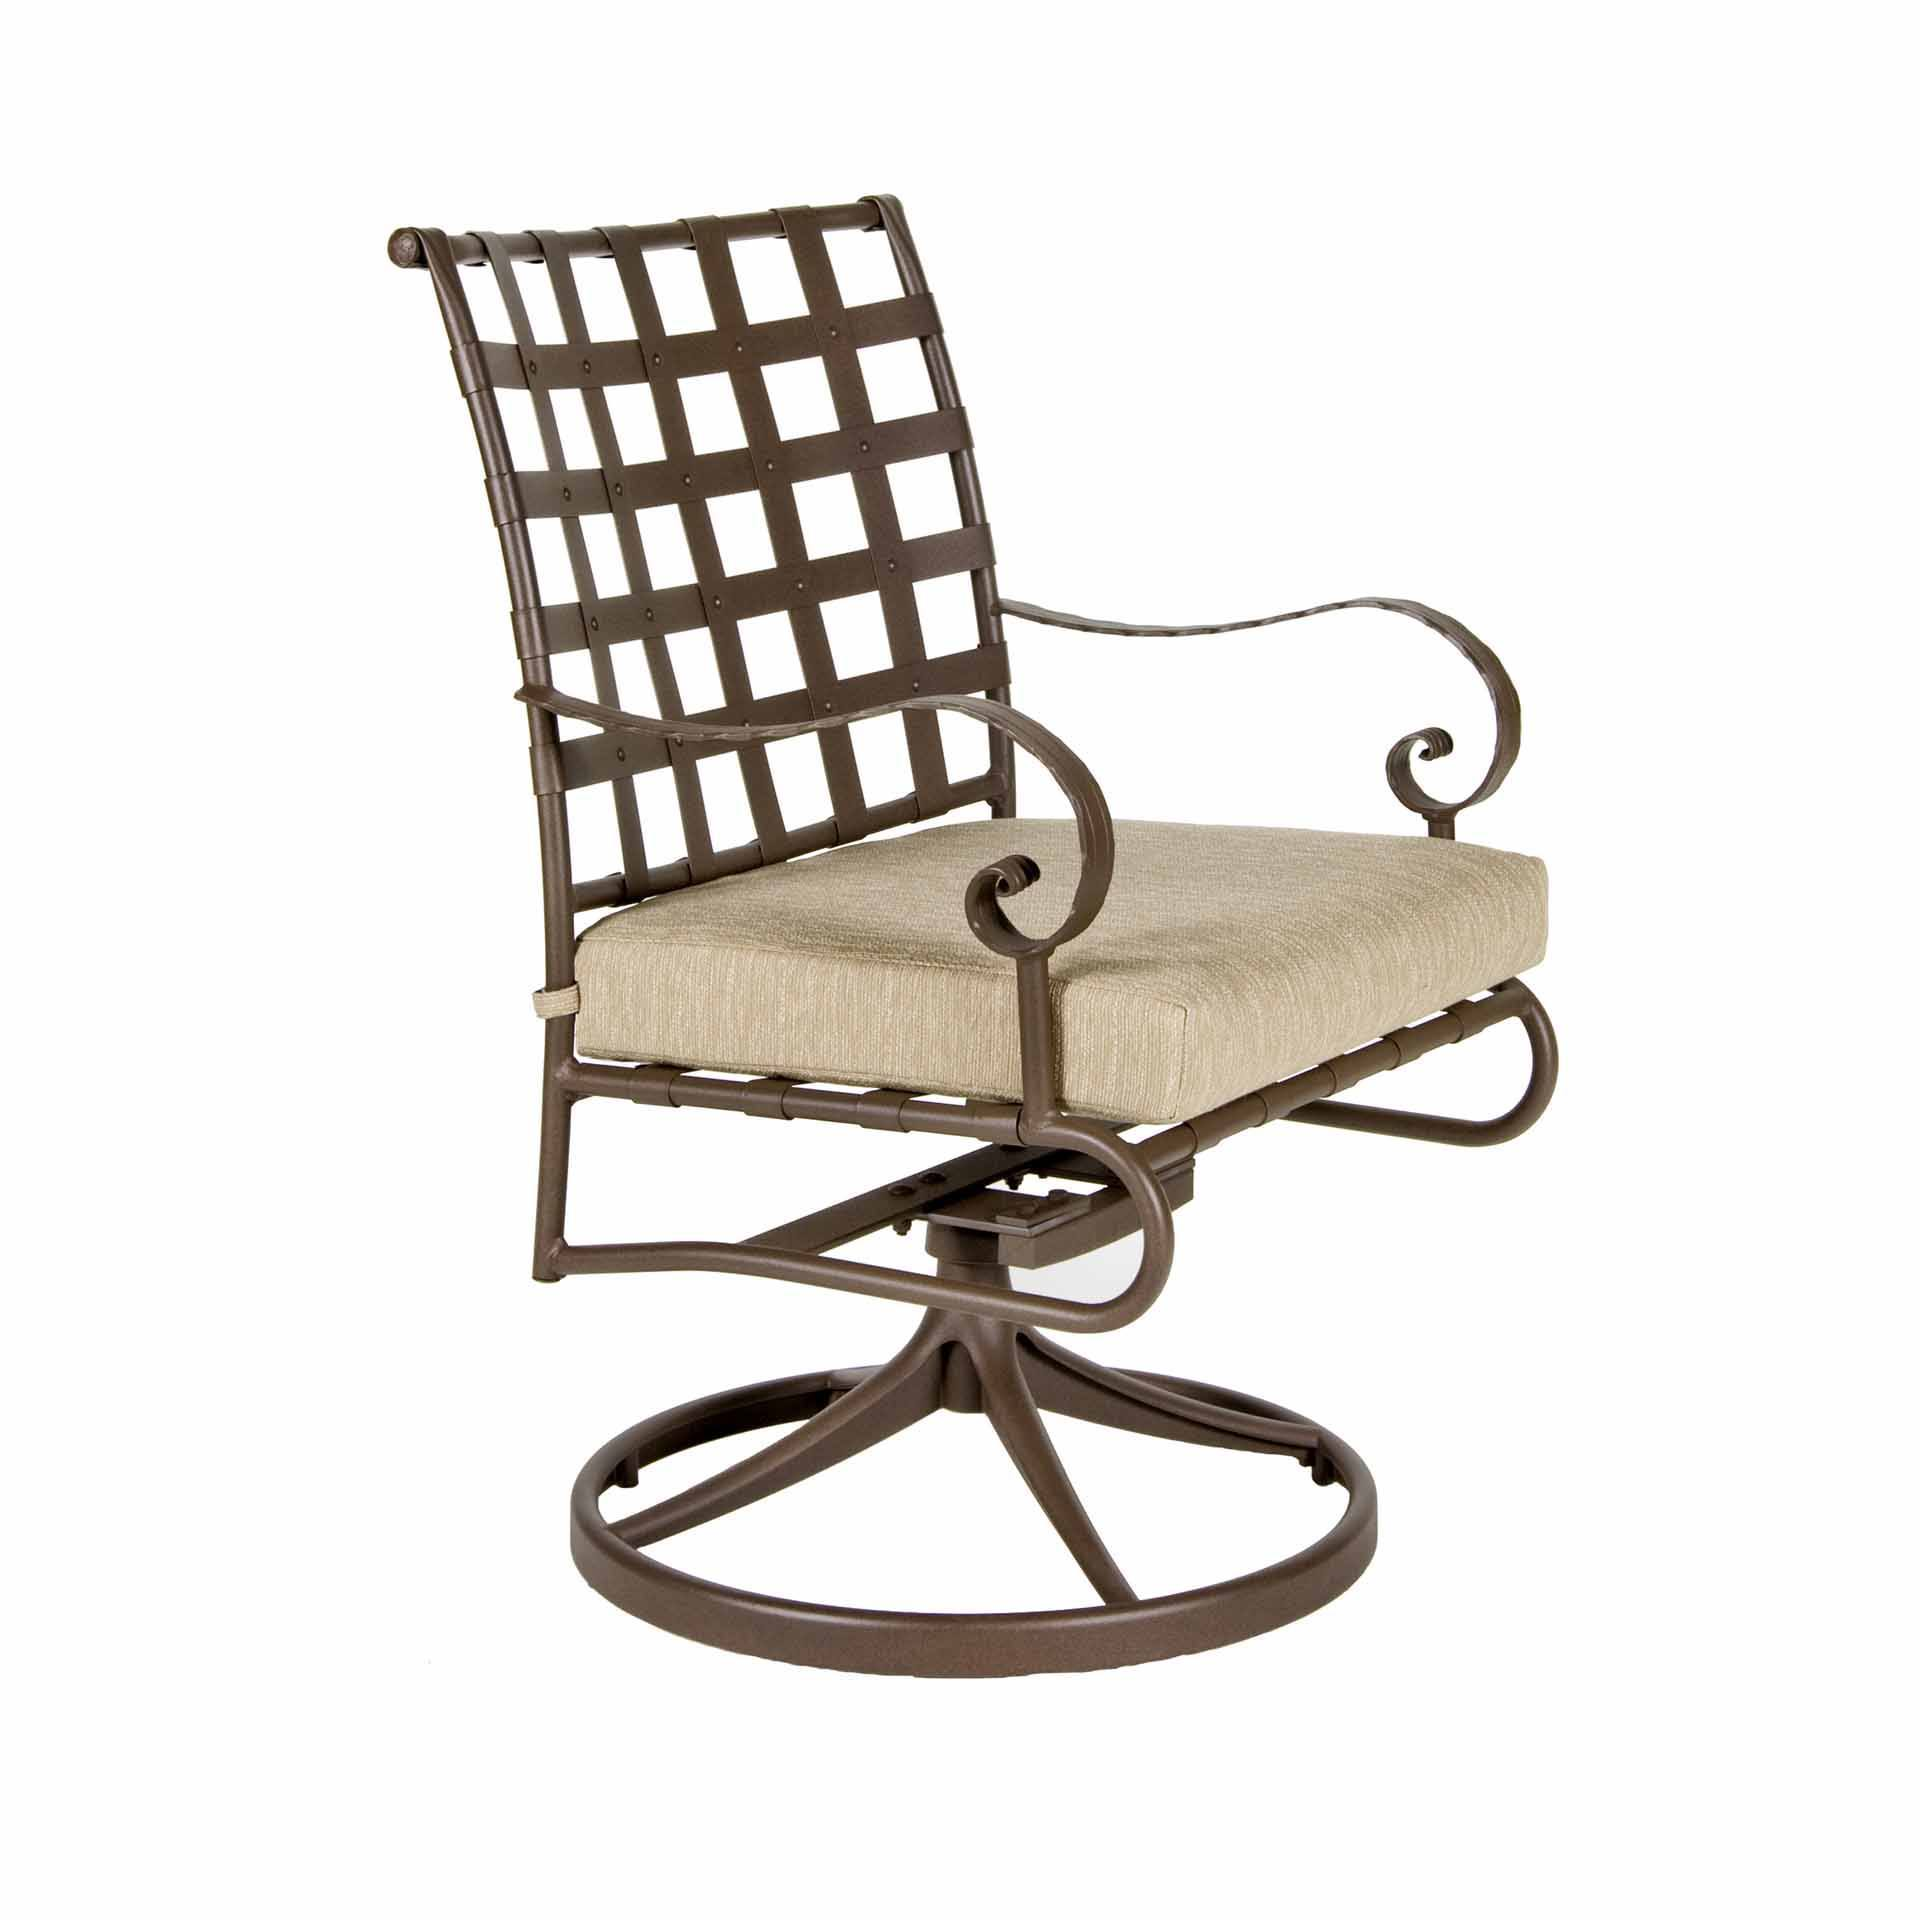 Ow Lee Classico Swivel Rocker Dining Arm Chair Leisure